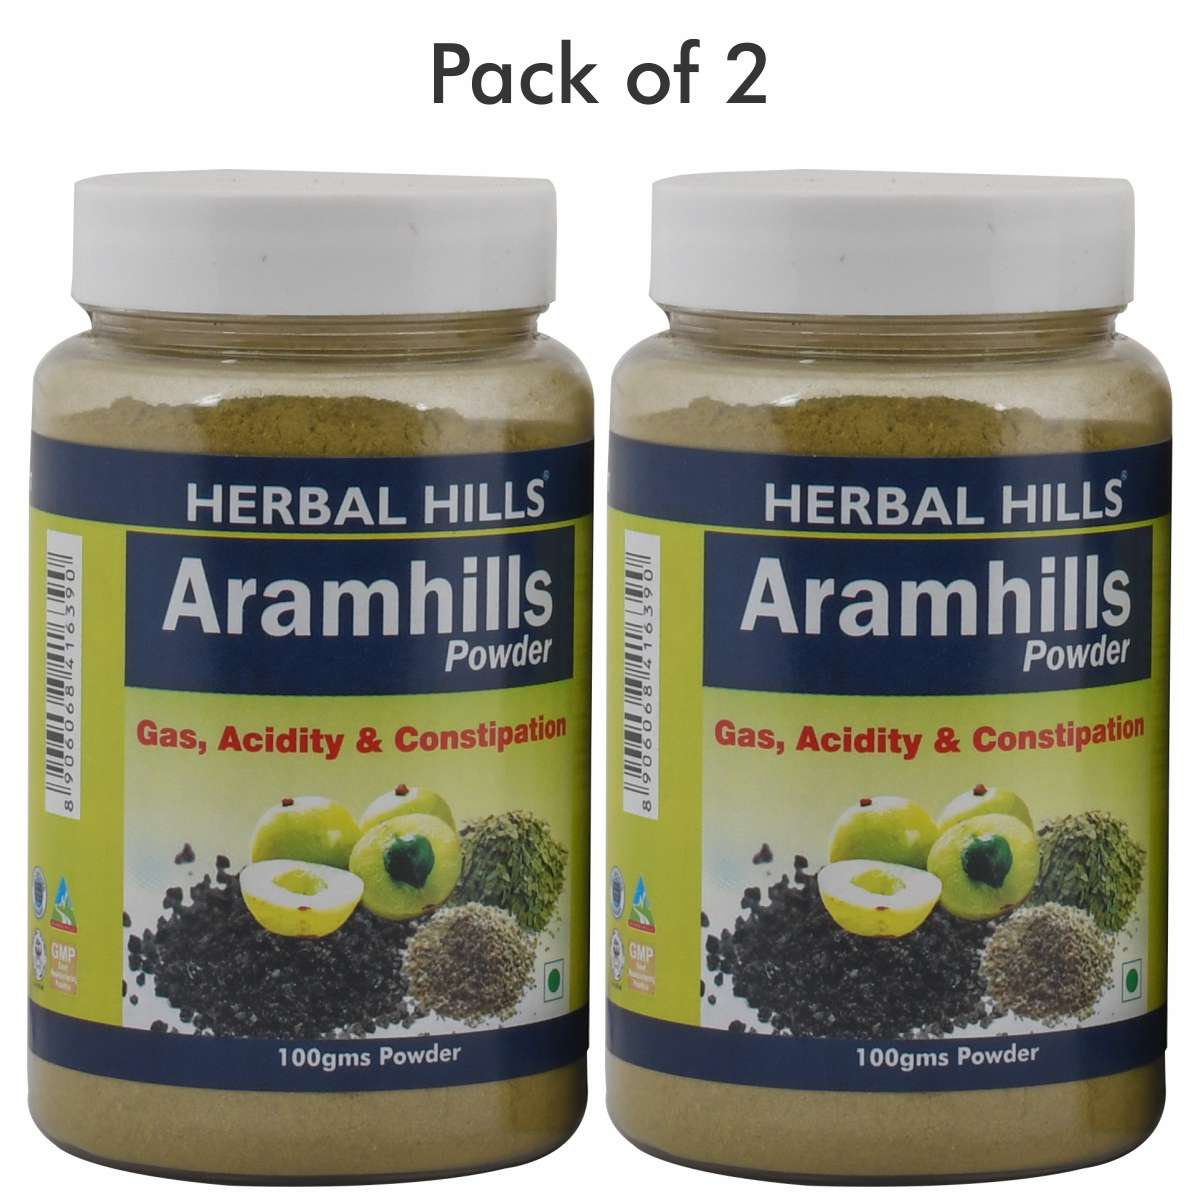 Herbal Hills Aramhills Powder - 100 gms (Pack of 2) - Ayurvedic Constipation Relief Powder - For Gastric And Acidity